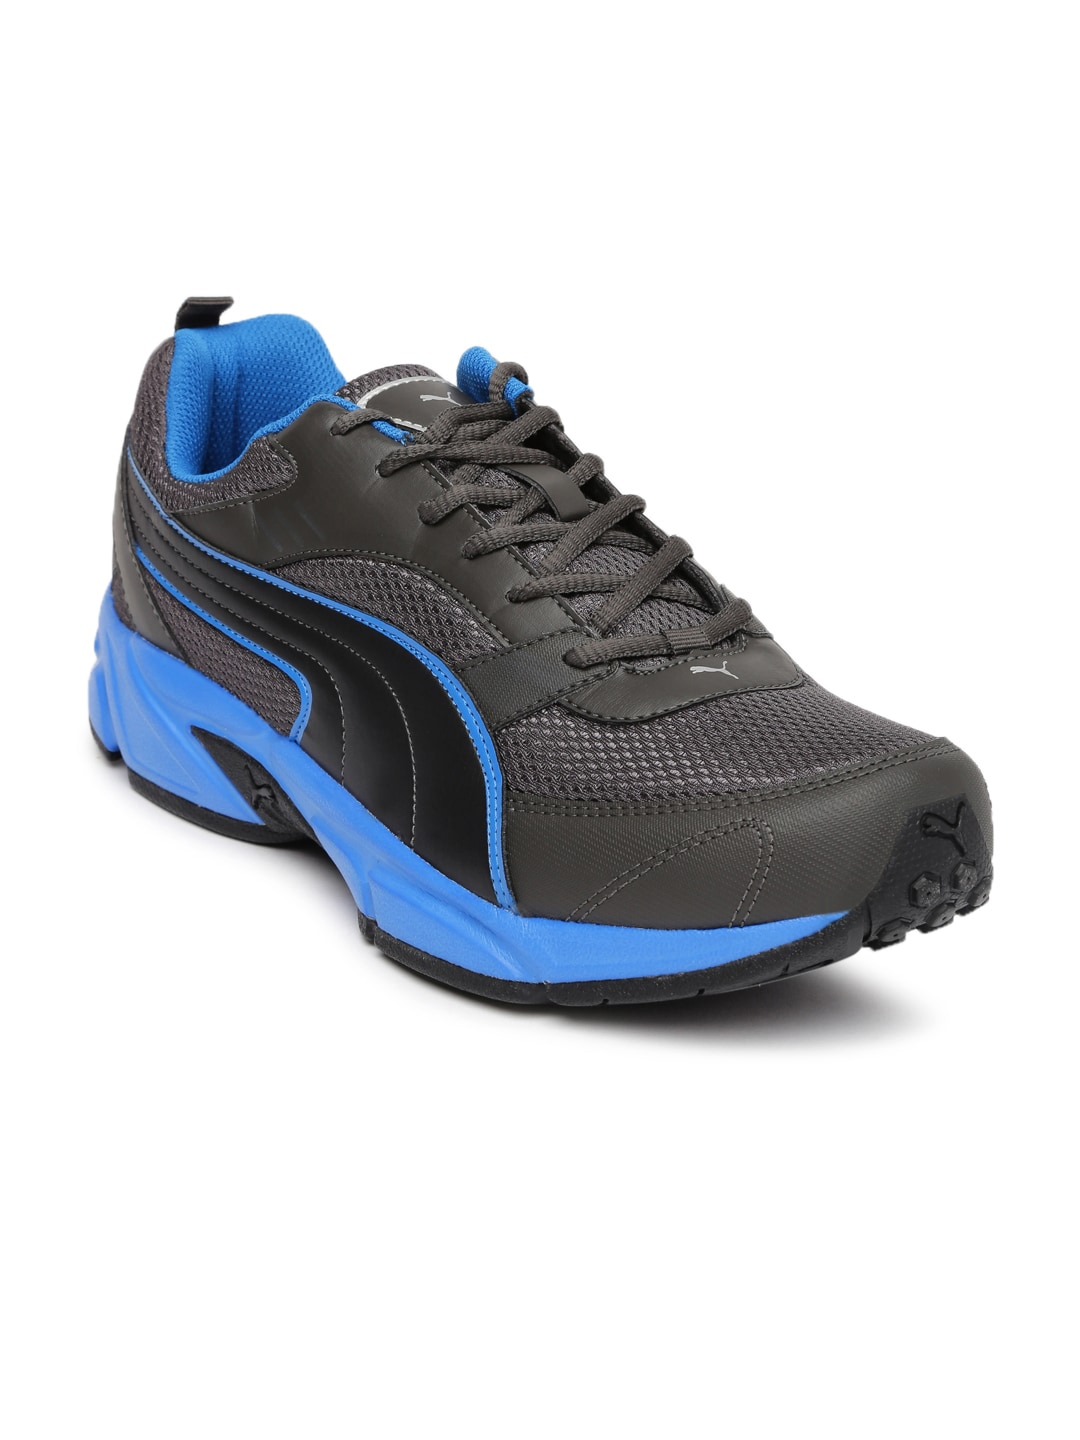 Puma Shoes Online Booking Puma Crib Shoes